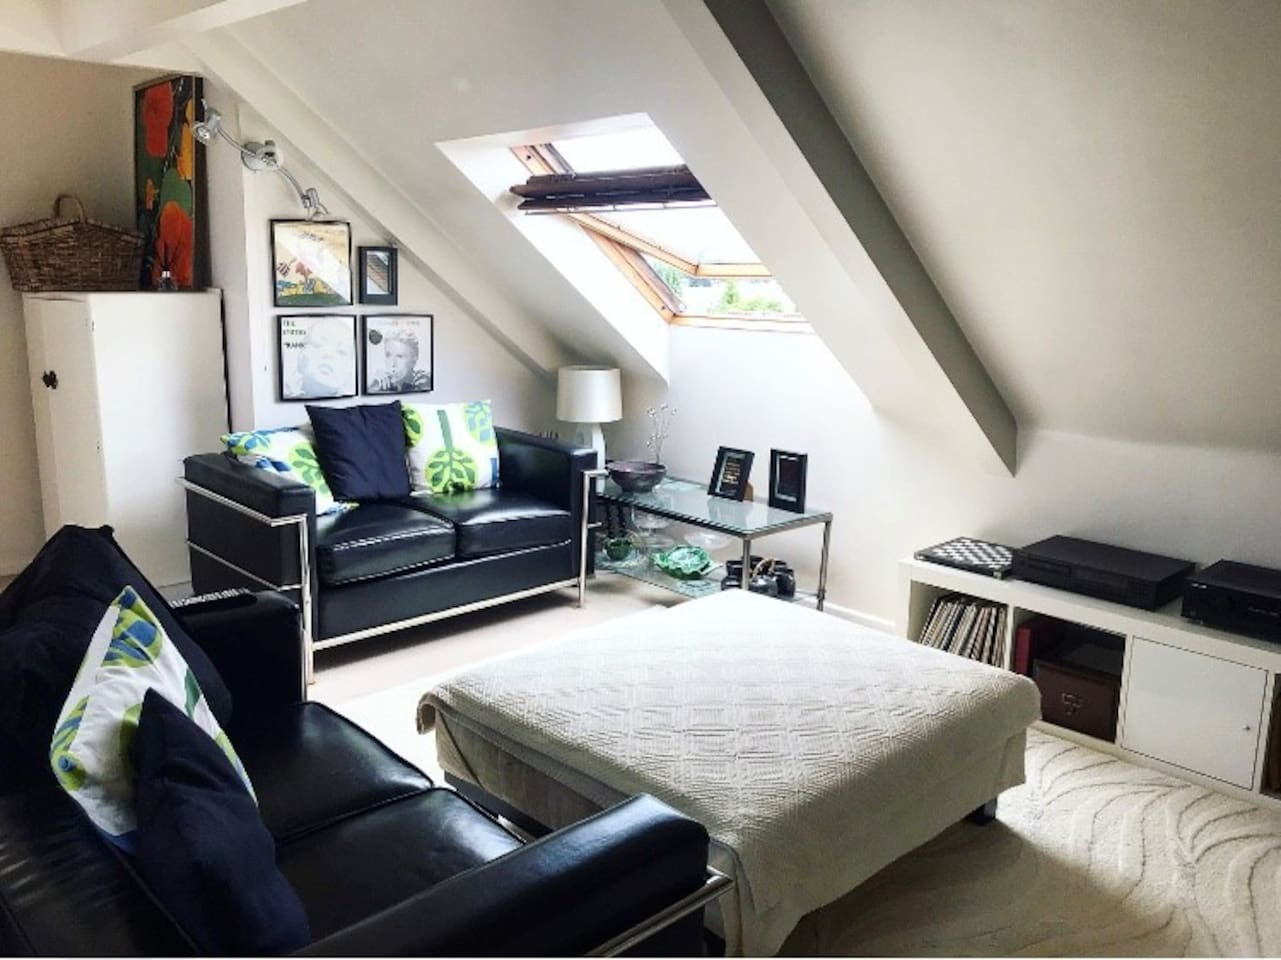 Living room area with beautiful views of the moors,2 sofas and large 46 inch TV, CD player ,wifi and turntable with old vinyls to play